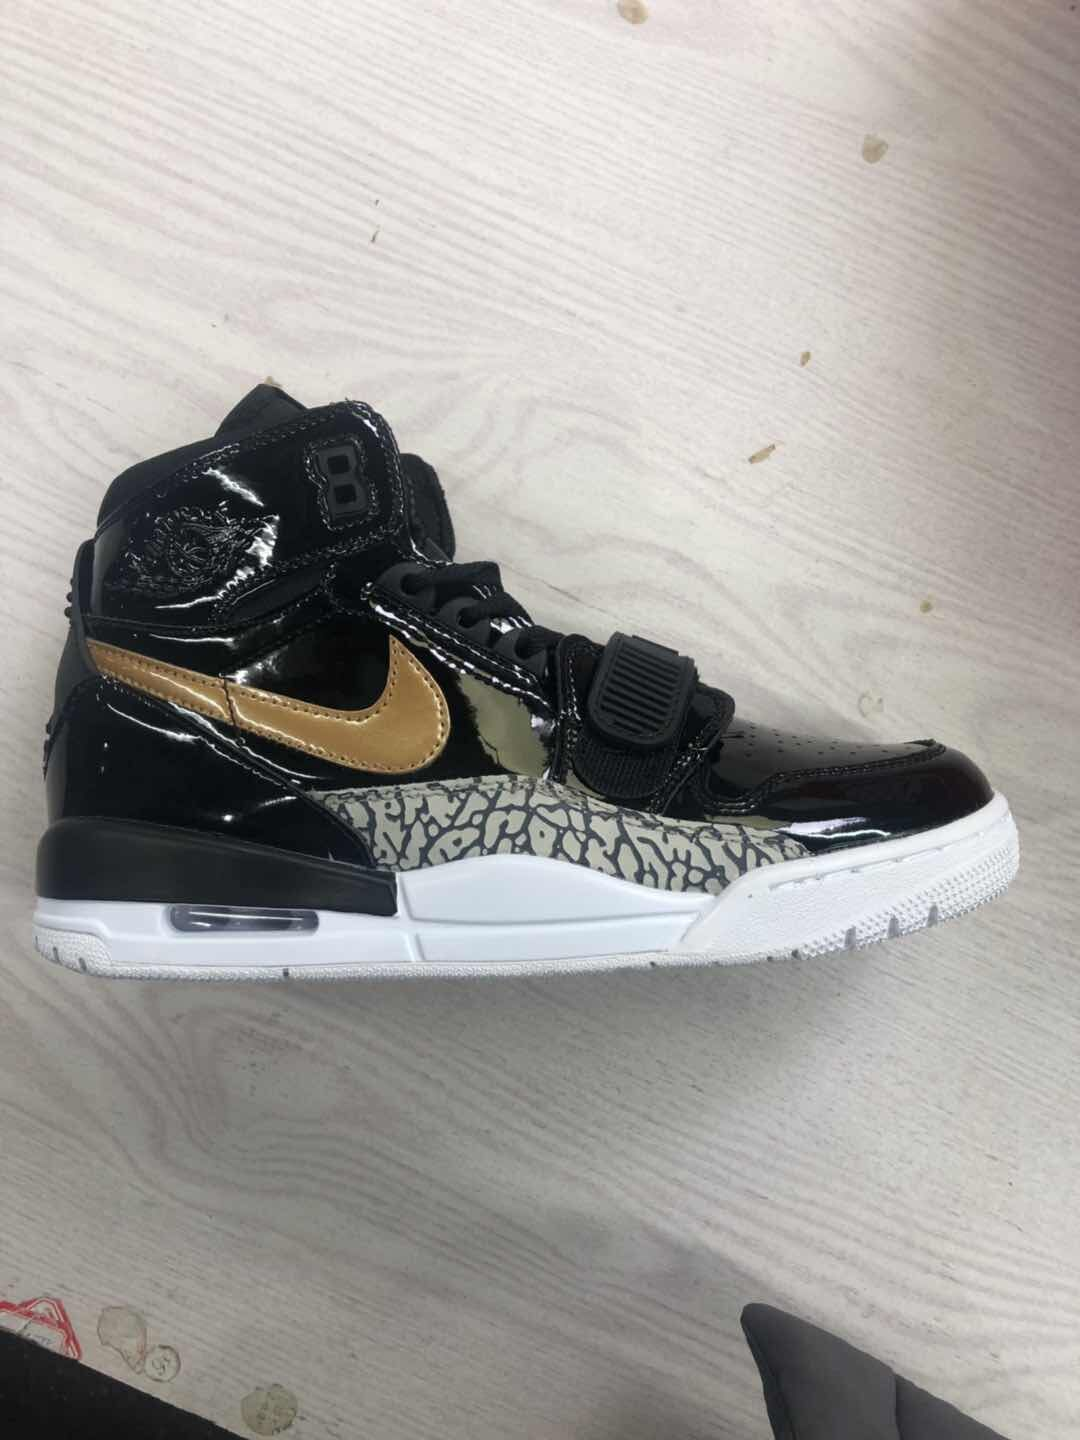 Air Jordan Legacy 312 Patent Leather Black Gold Grey Shoes